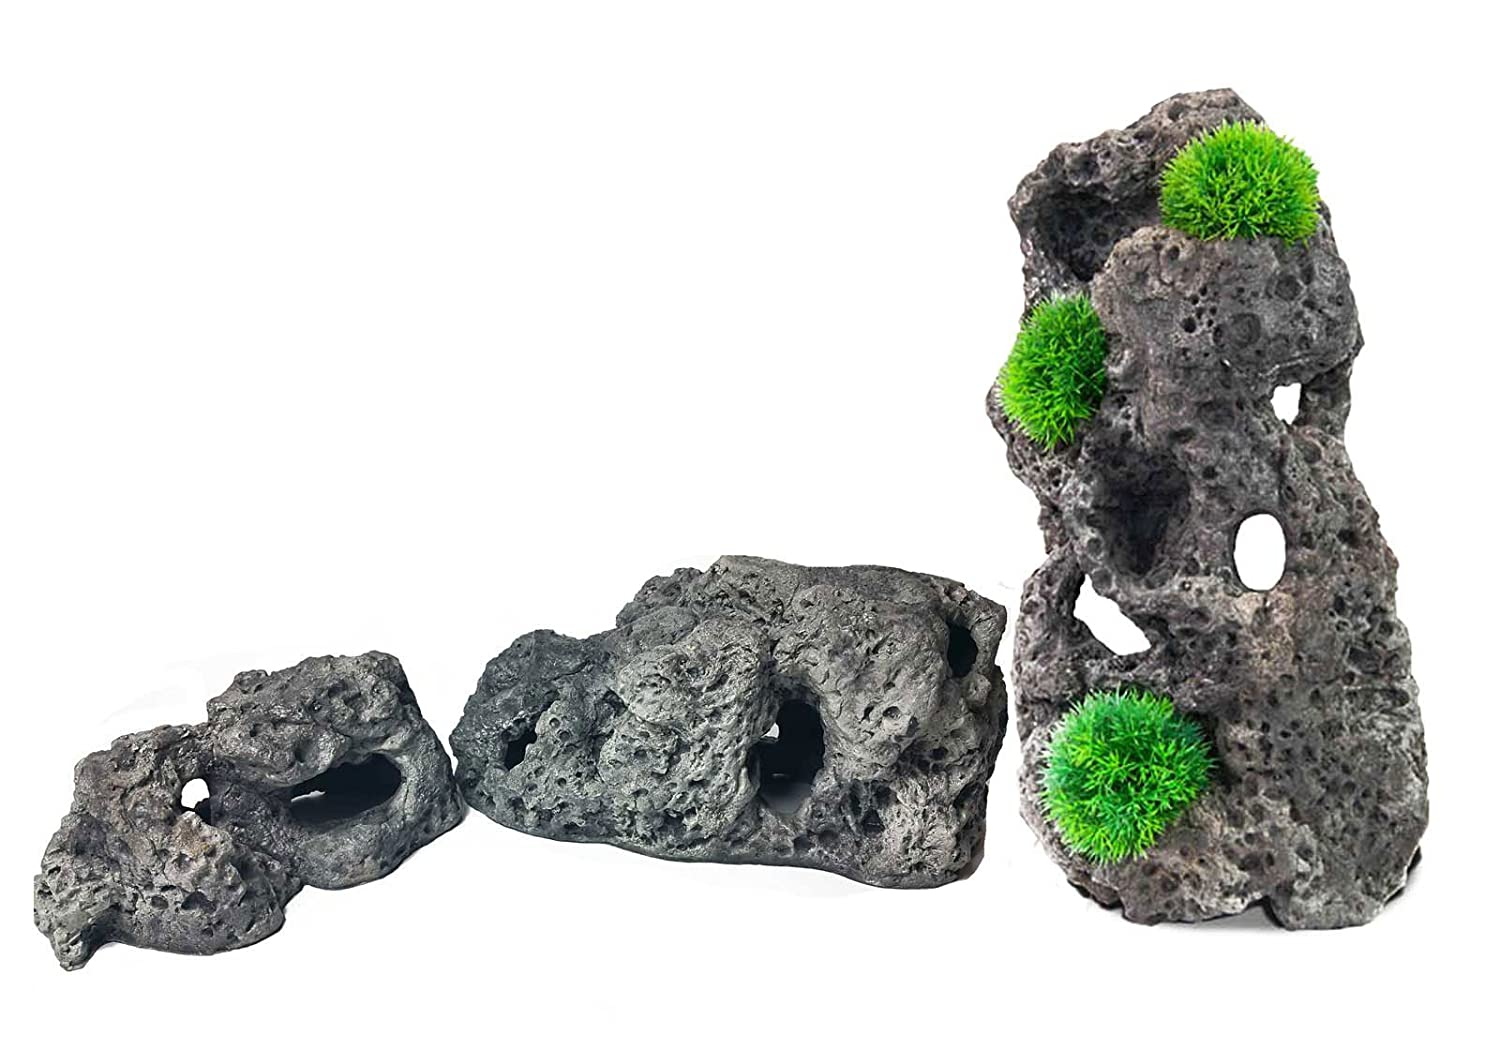 Aqua Maniac Limestone Cave Rock Fish Hideaway for Fish Tanks BUNDLE, Includes 3 Different Sizes (25.5 x 14.5 x 11.5cm, 35.5 x16x 17cm, 46x23x19.5 cm)